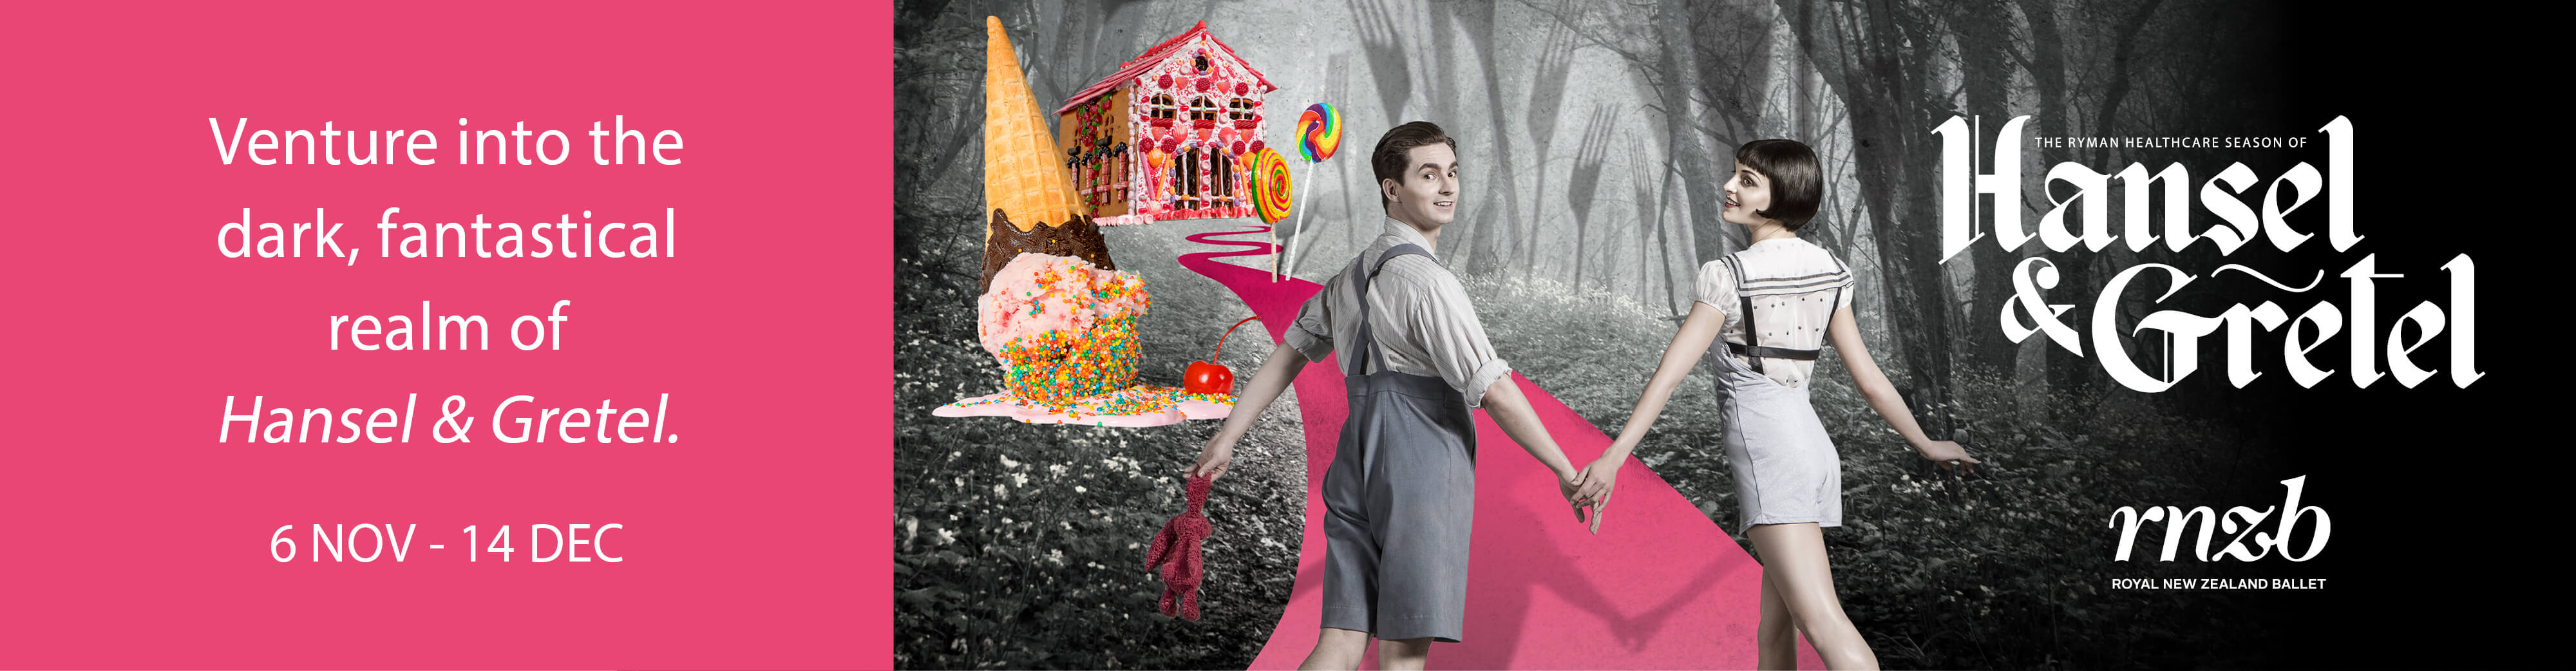 Hansel and Gretel - homepage tile 1920x500px